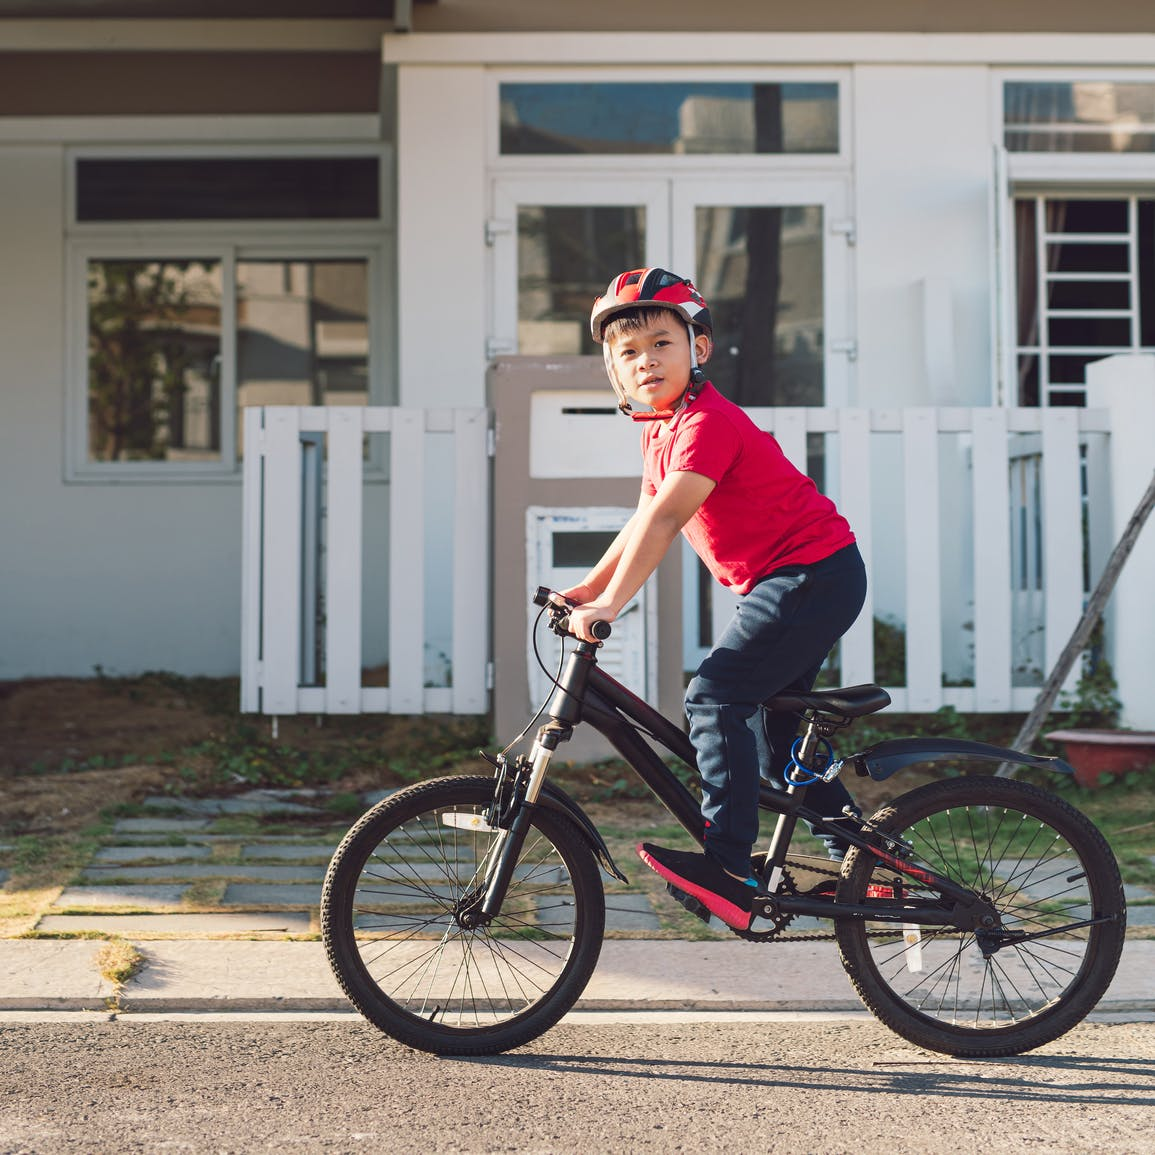 Child wearing bicycle helmet riding bicycle beside house